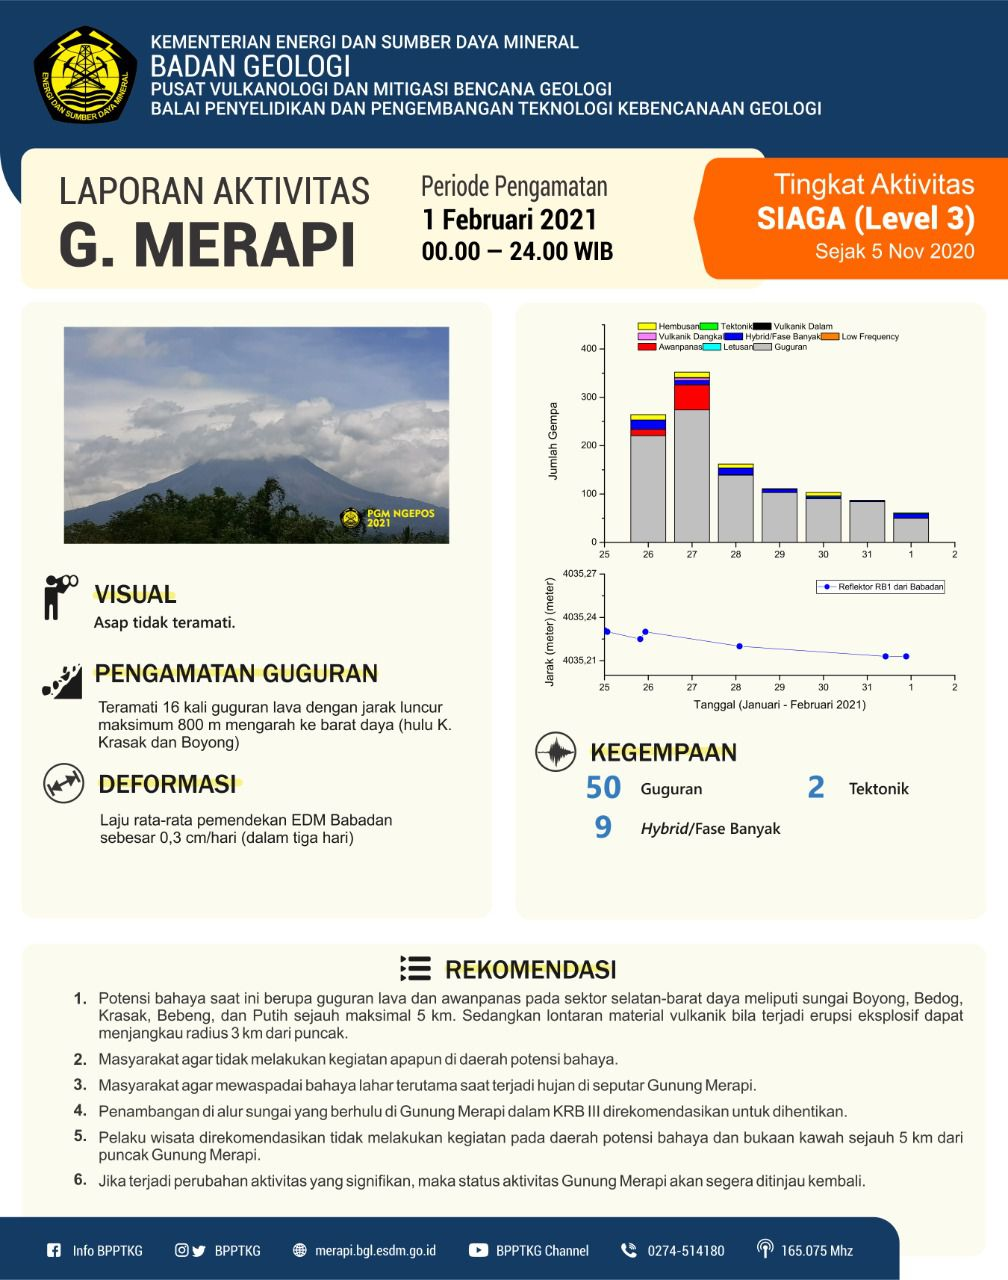 Merapi - seismicity and displacement on February 1, 2021 - Doc. BPPTKG